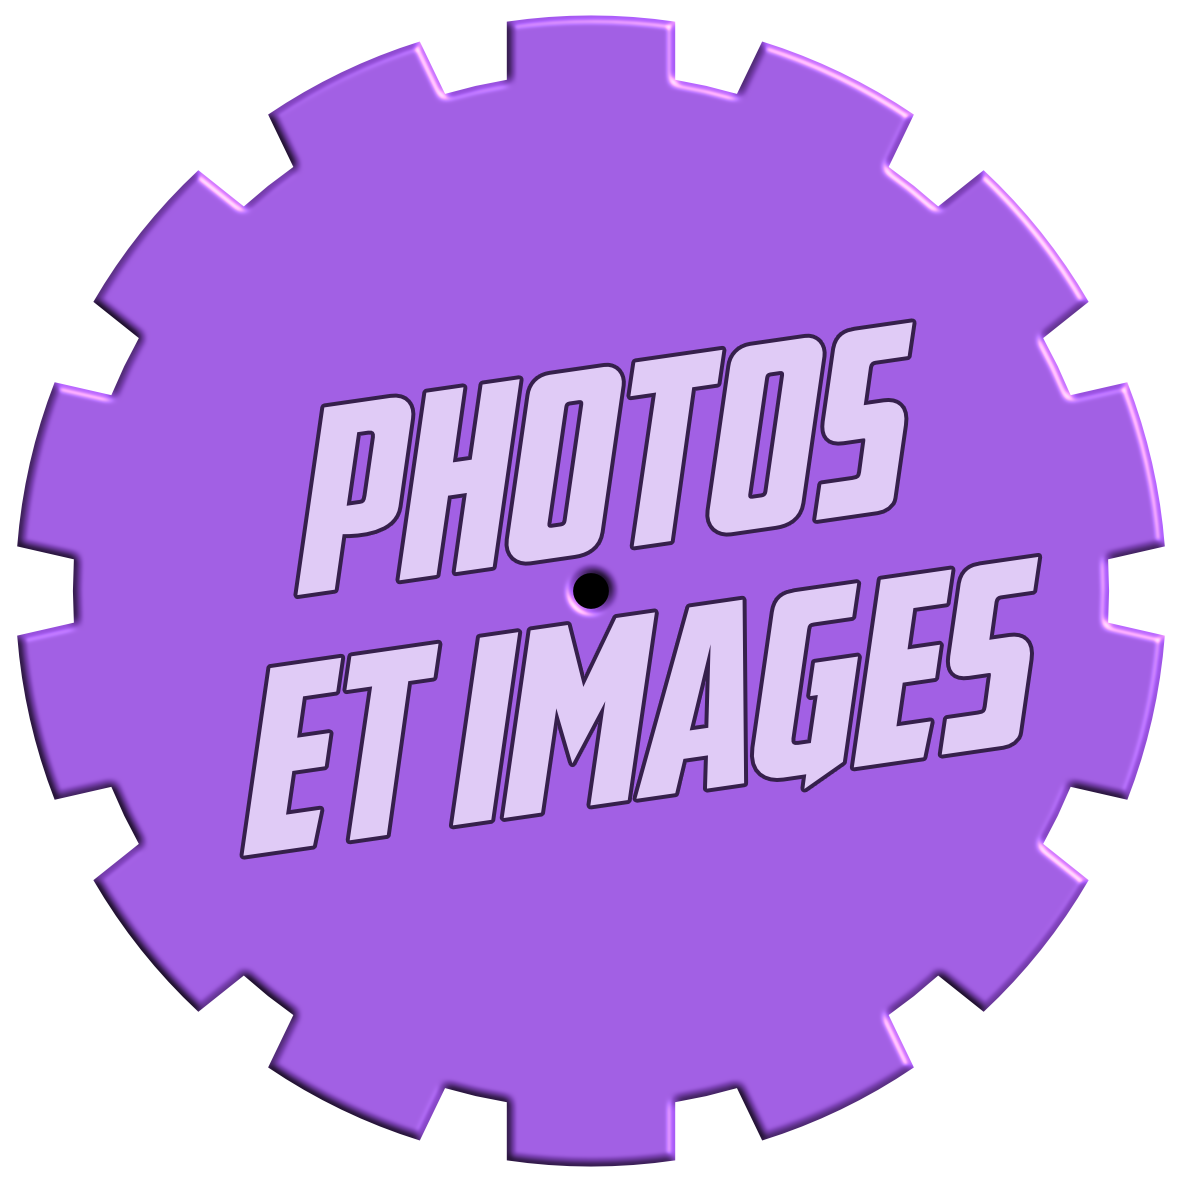 Photos et images